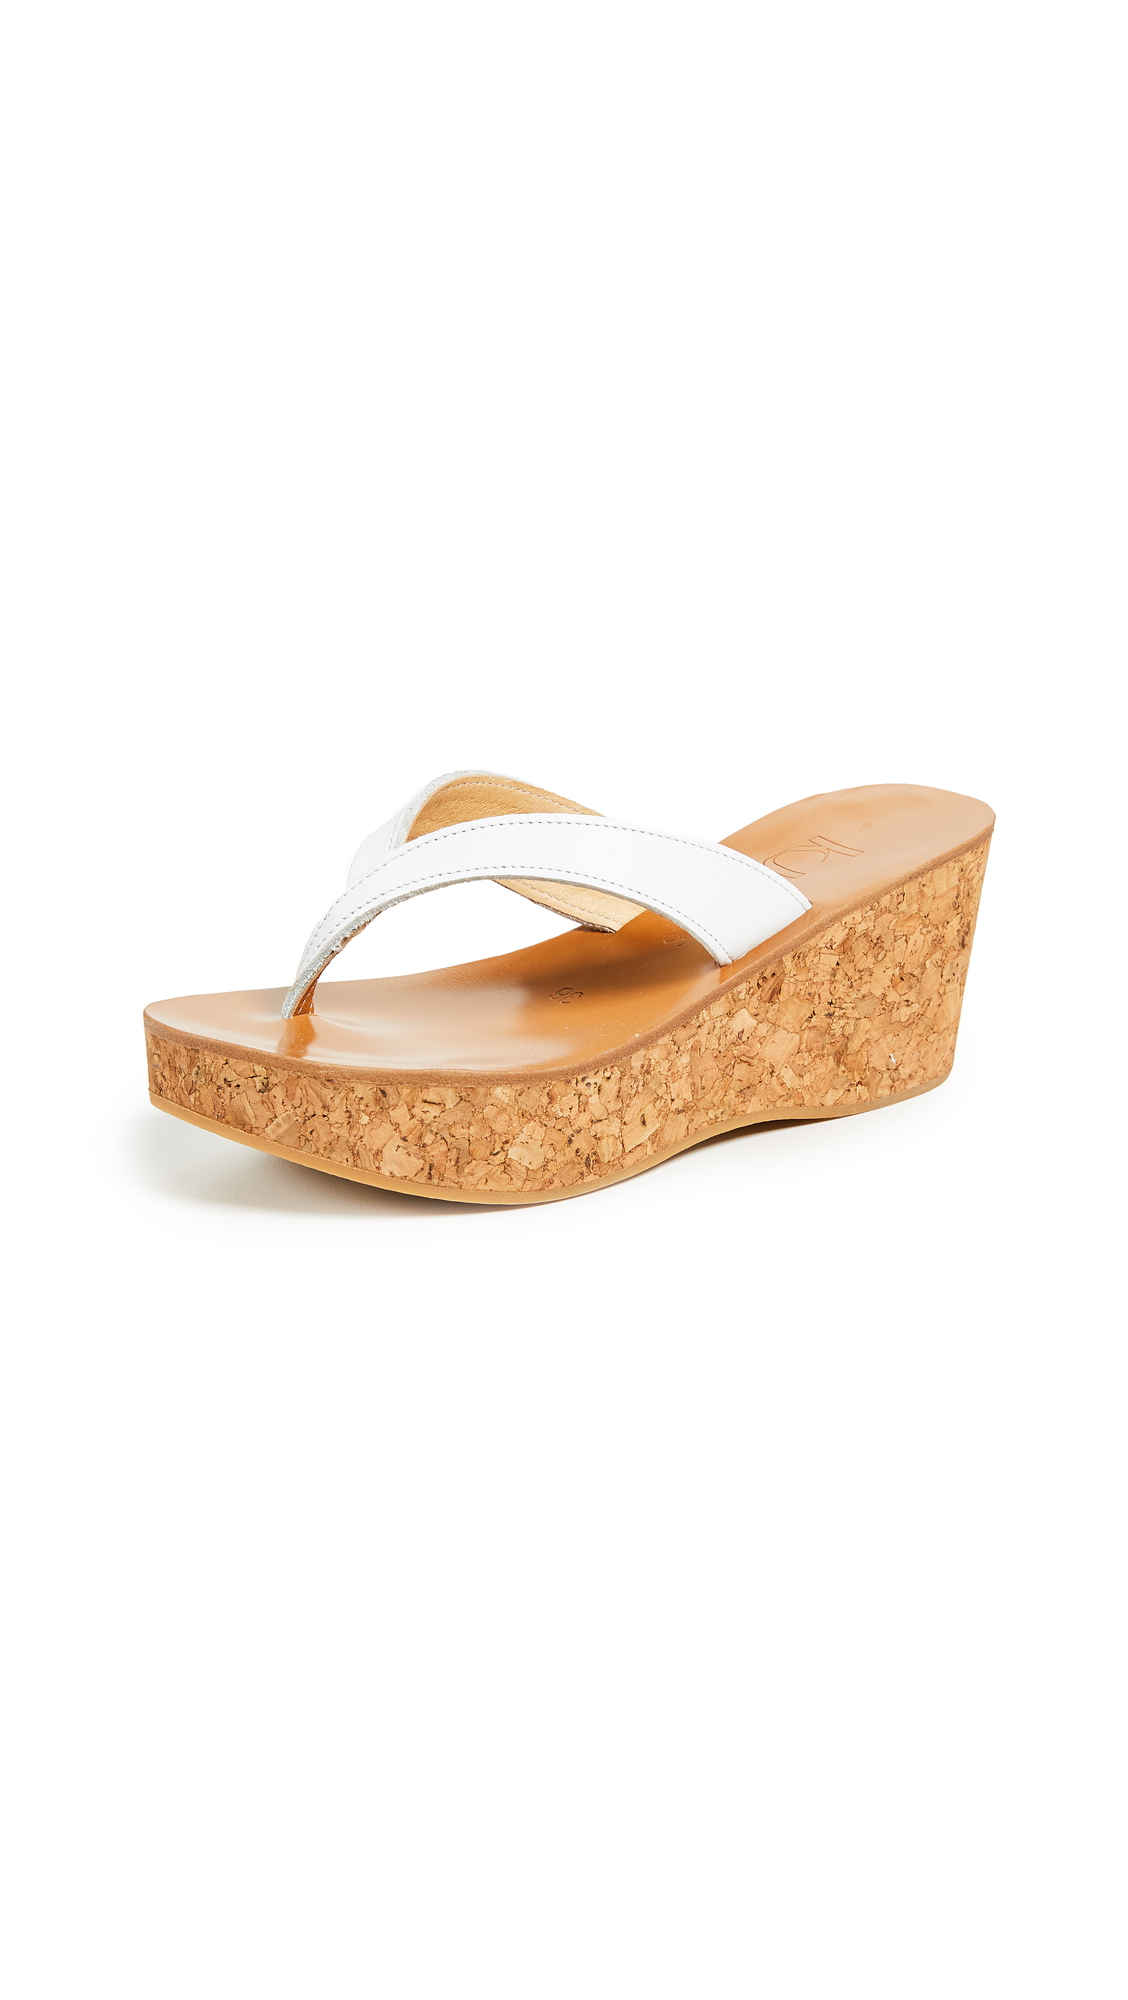 K. Jacques Diorite Thong Wedges - Pul Blanc